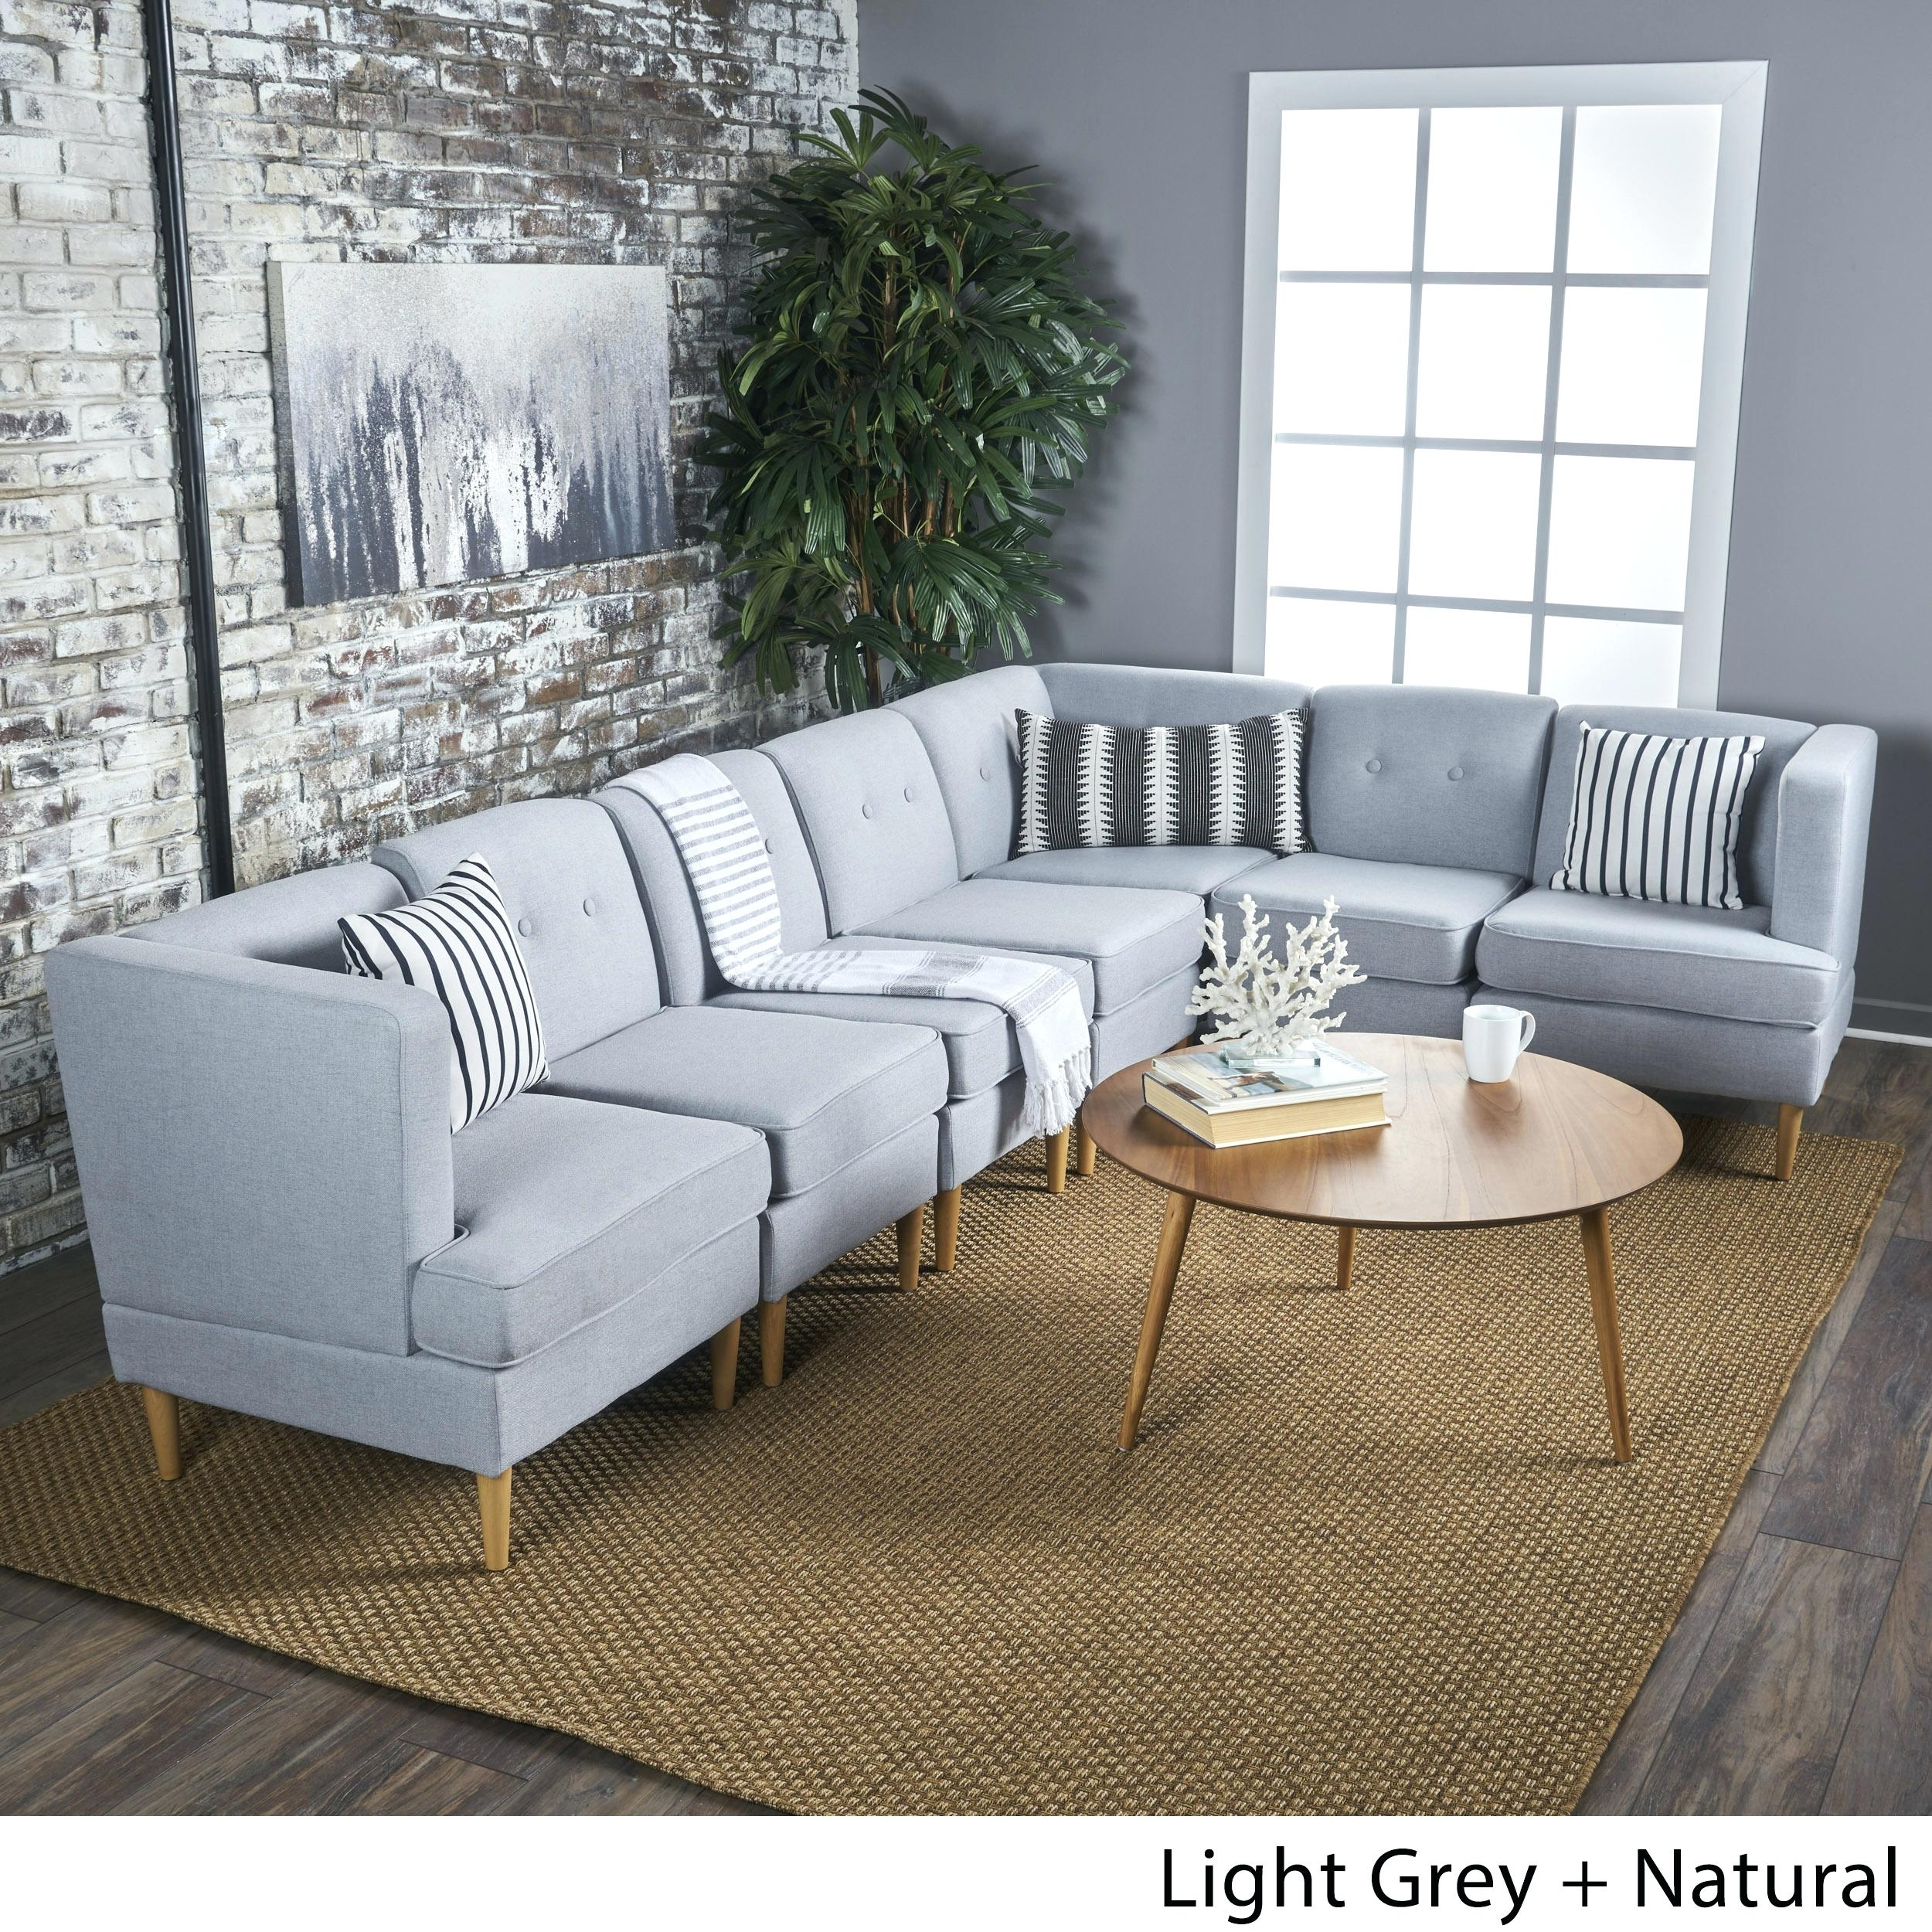 Sams Club Living Room Furniture Kitchen Ideas Online Cheap Inspiring Regarding Sams Club Sectional Sofas (View 9 of 10)